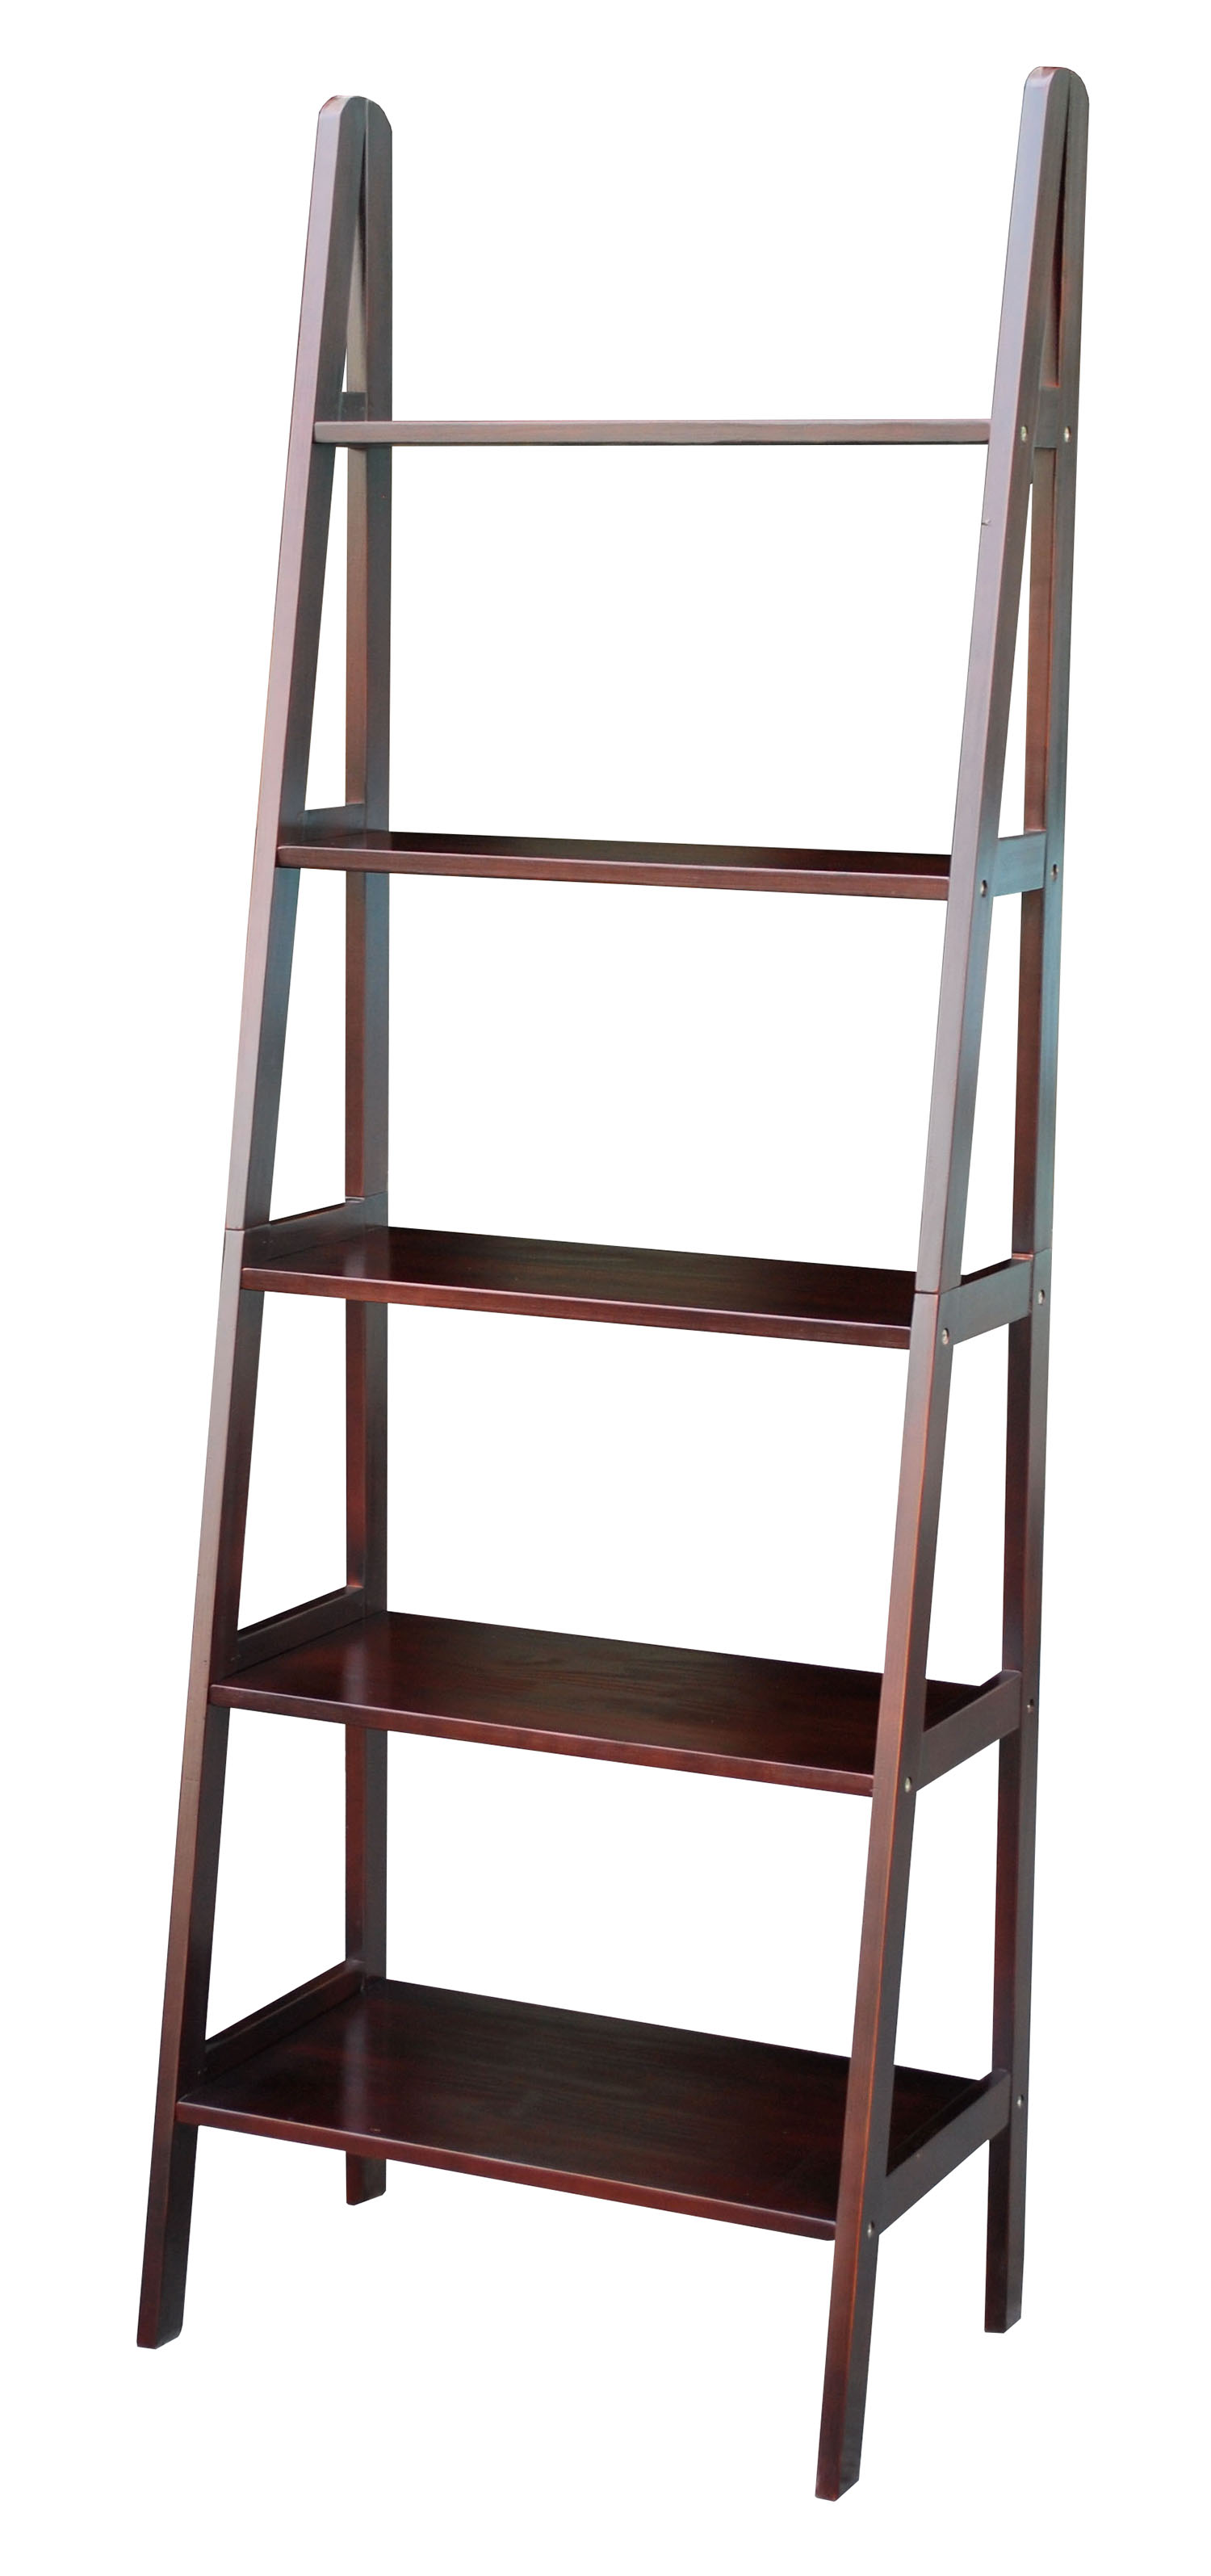 bookshelf furniture home decor decorations bookcases wood house bookcase storage shelf ladder gorgeous inspiration